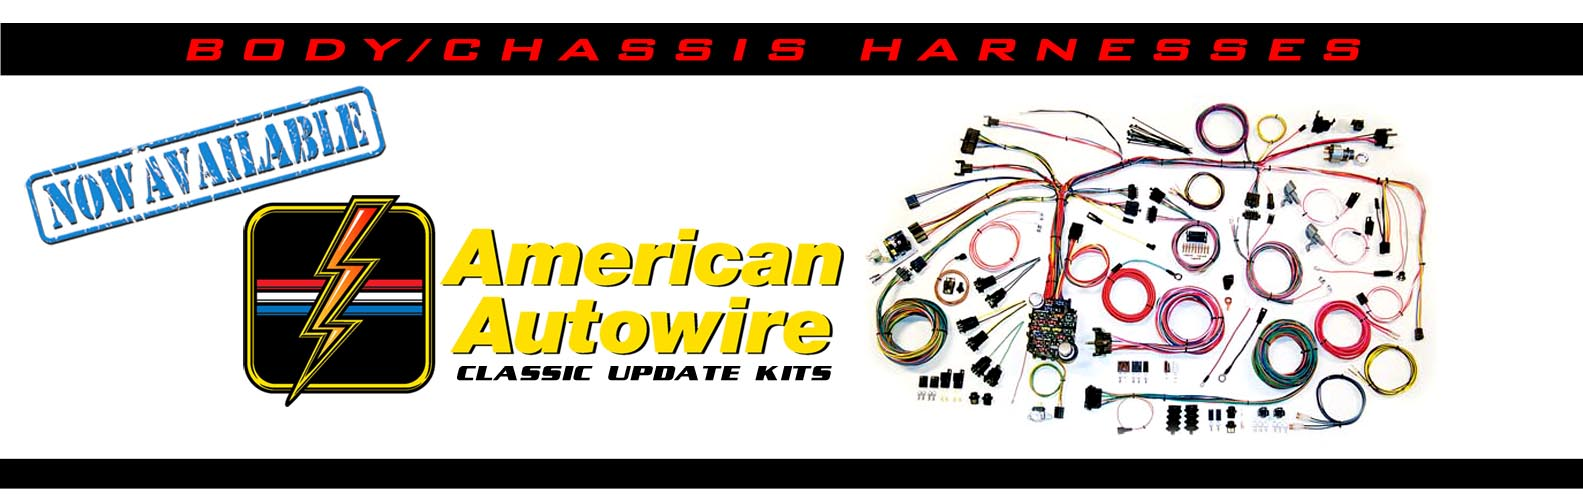 PSI | Standalone Wiring Harness | LS Wiring | LS Wirng Harness | LSX Lt Wiring Harness Color Code on toyota wiring diagrams color code, wiring harness transmission, wiring harness connectors, safety harness color code, relay harness color code, trailer wire harness color code,